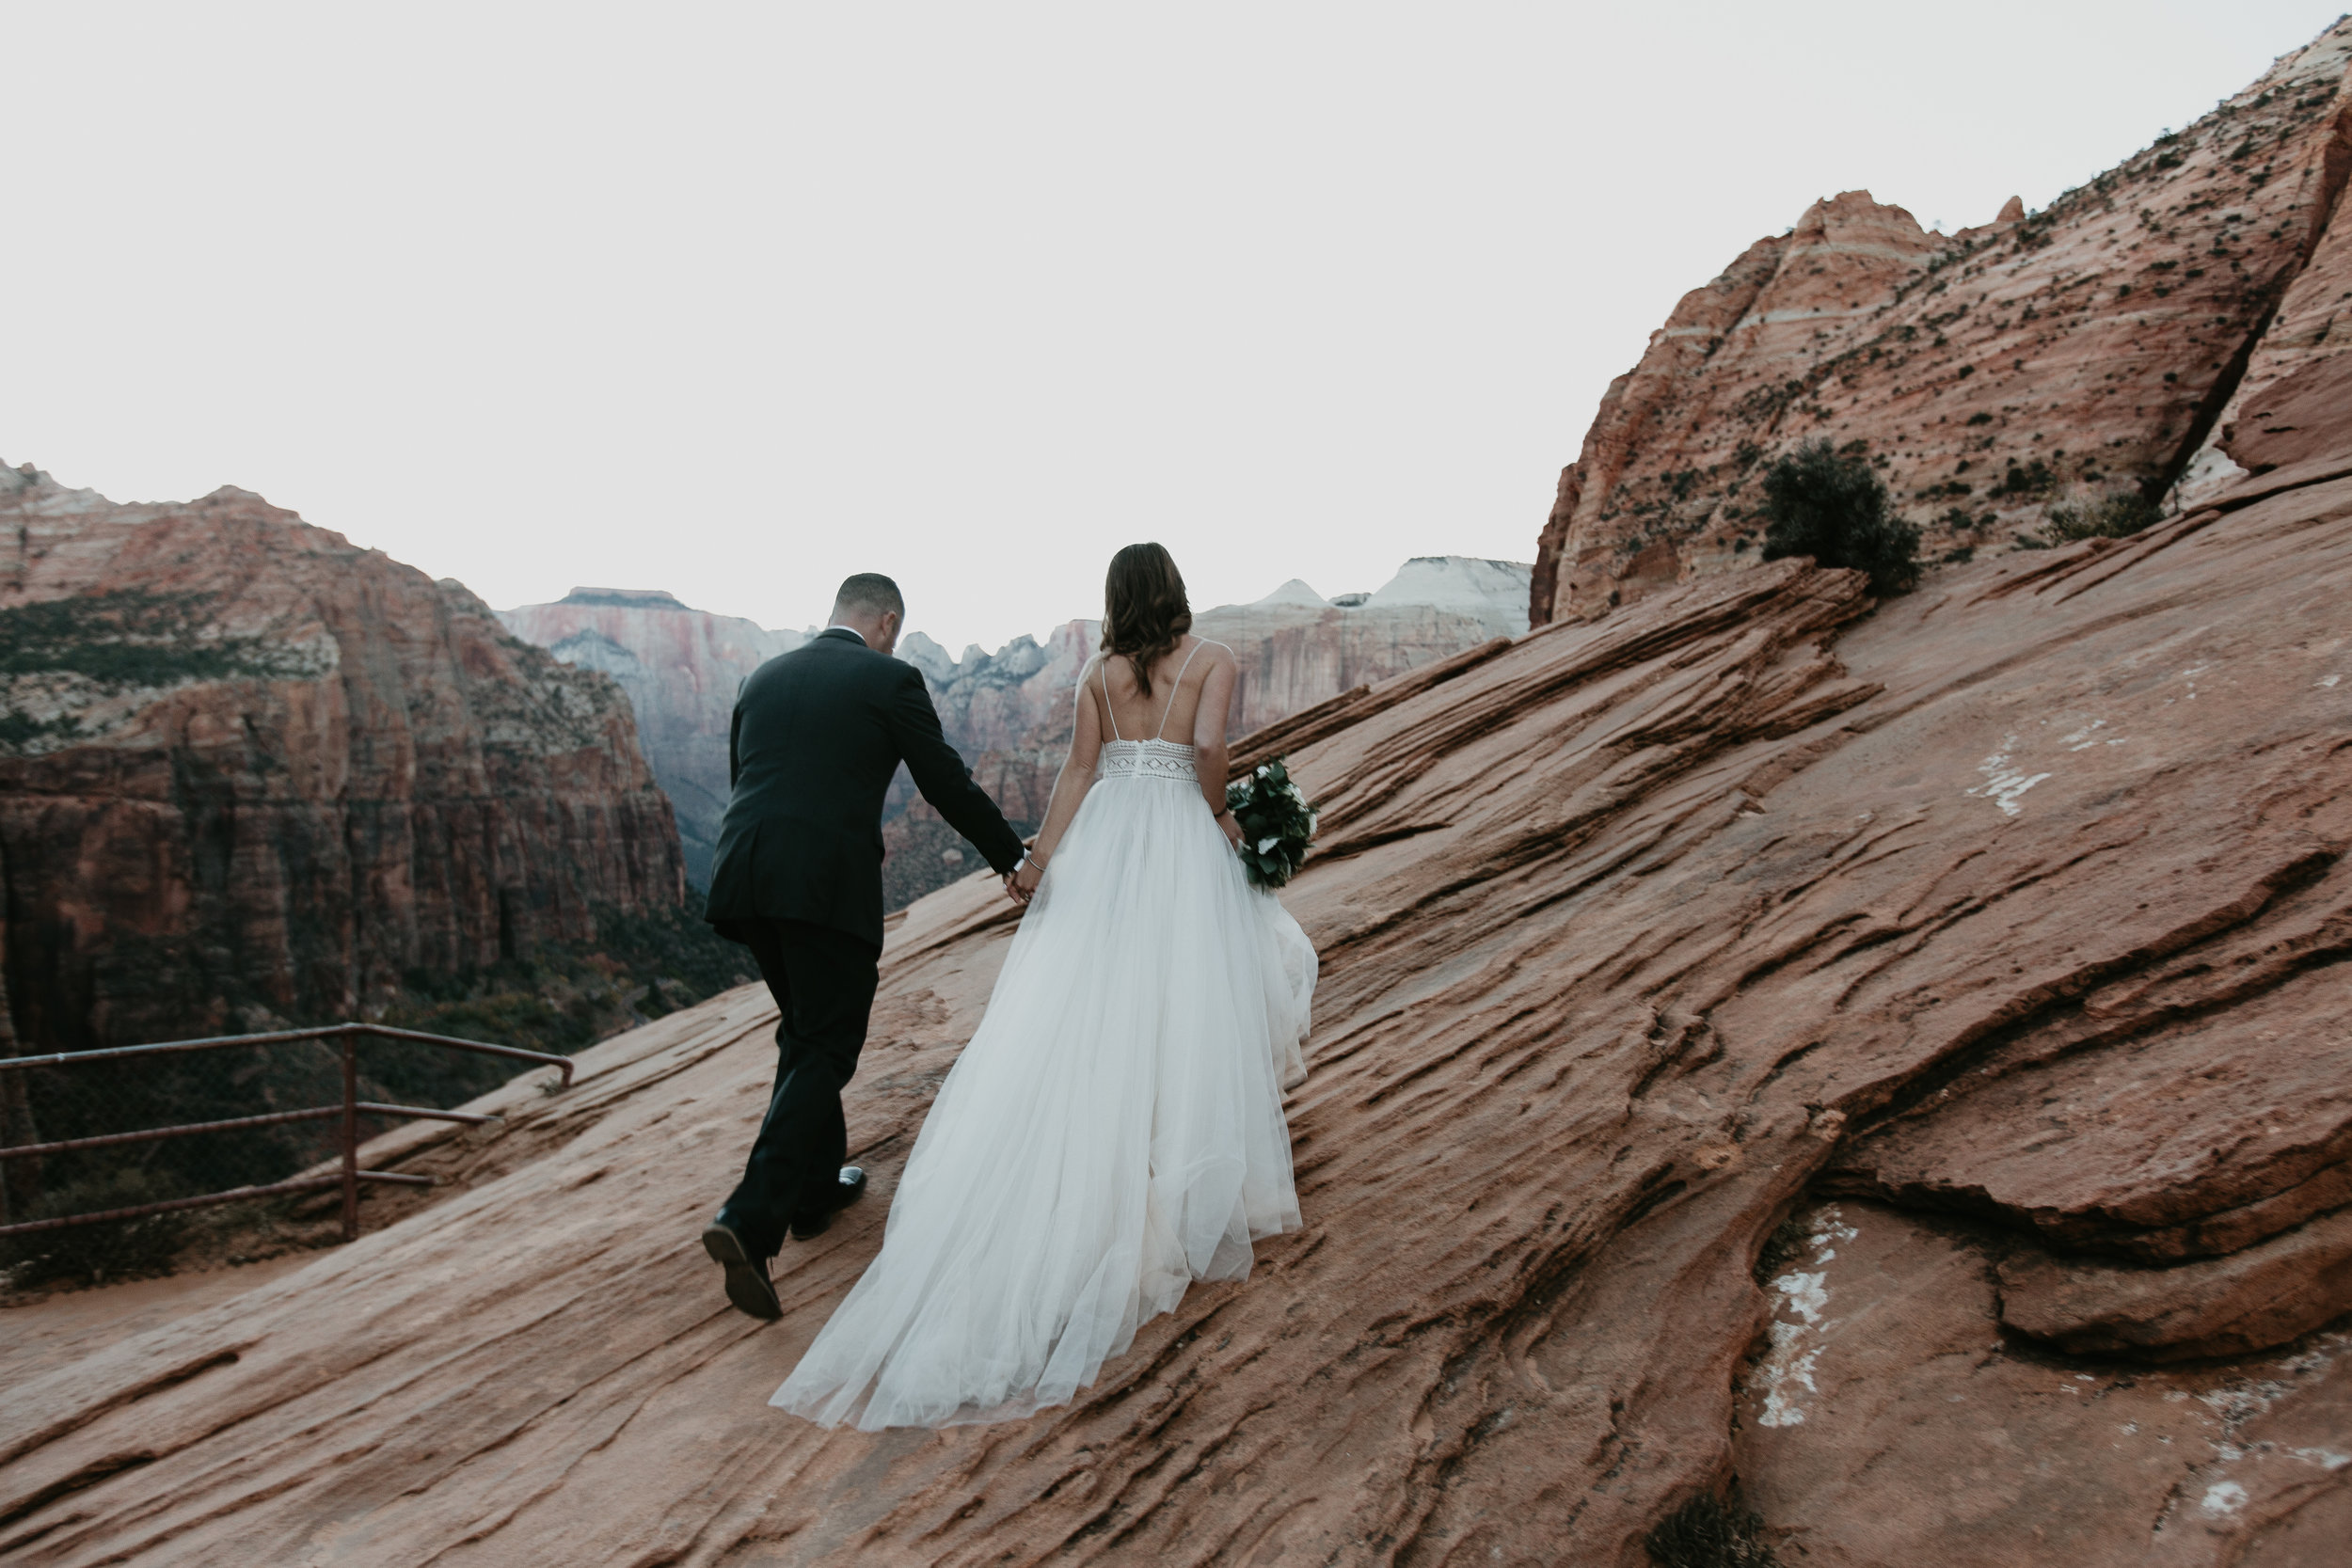 nicole-daacke-photography-zion-national-park-elopement-photographer-canyon-overlook-trail-elope-hiking-adventure-wedding-photos-fall-utah-red-rock-canyon-stgeorge-eloping-photographer-75.jpg